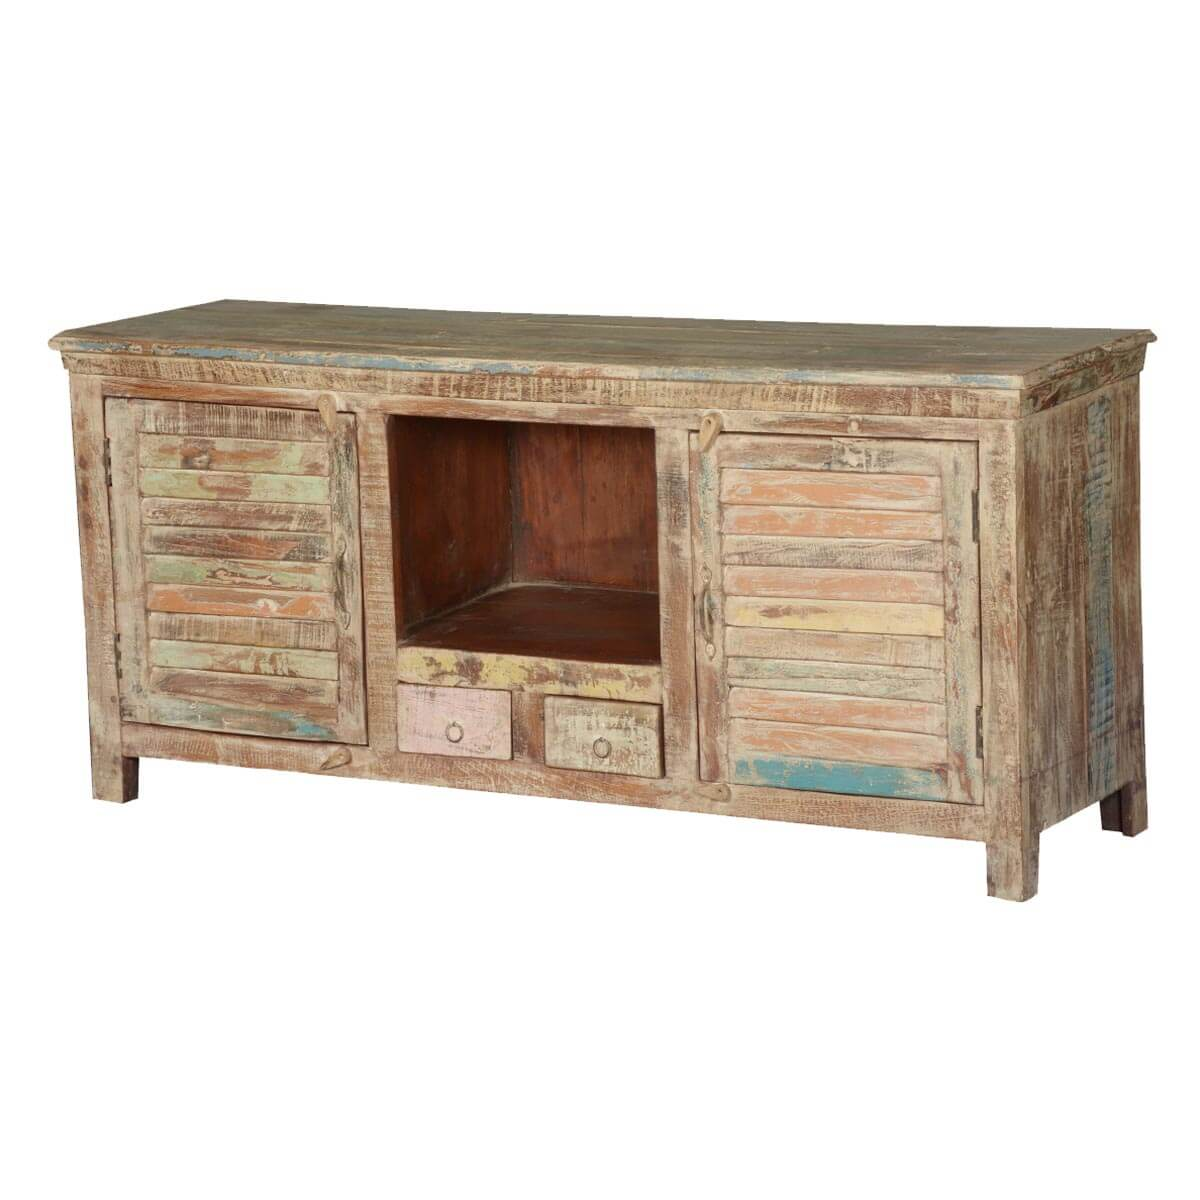 Frosted shutter doors reclaimed wood tv console media cabinet for Barnwood media cabinet